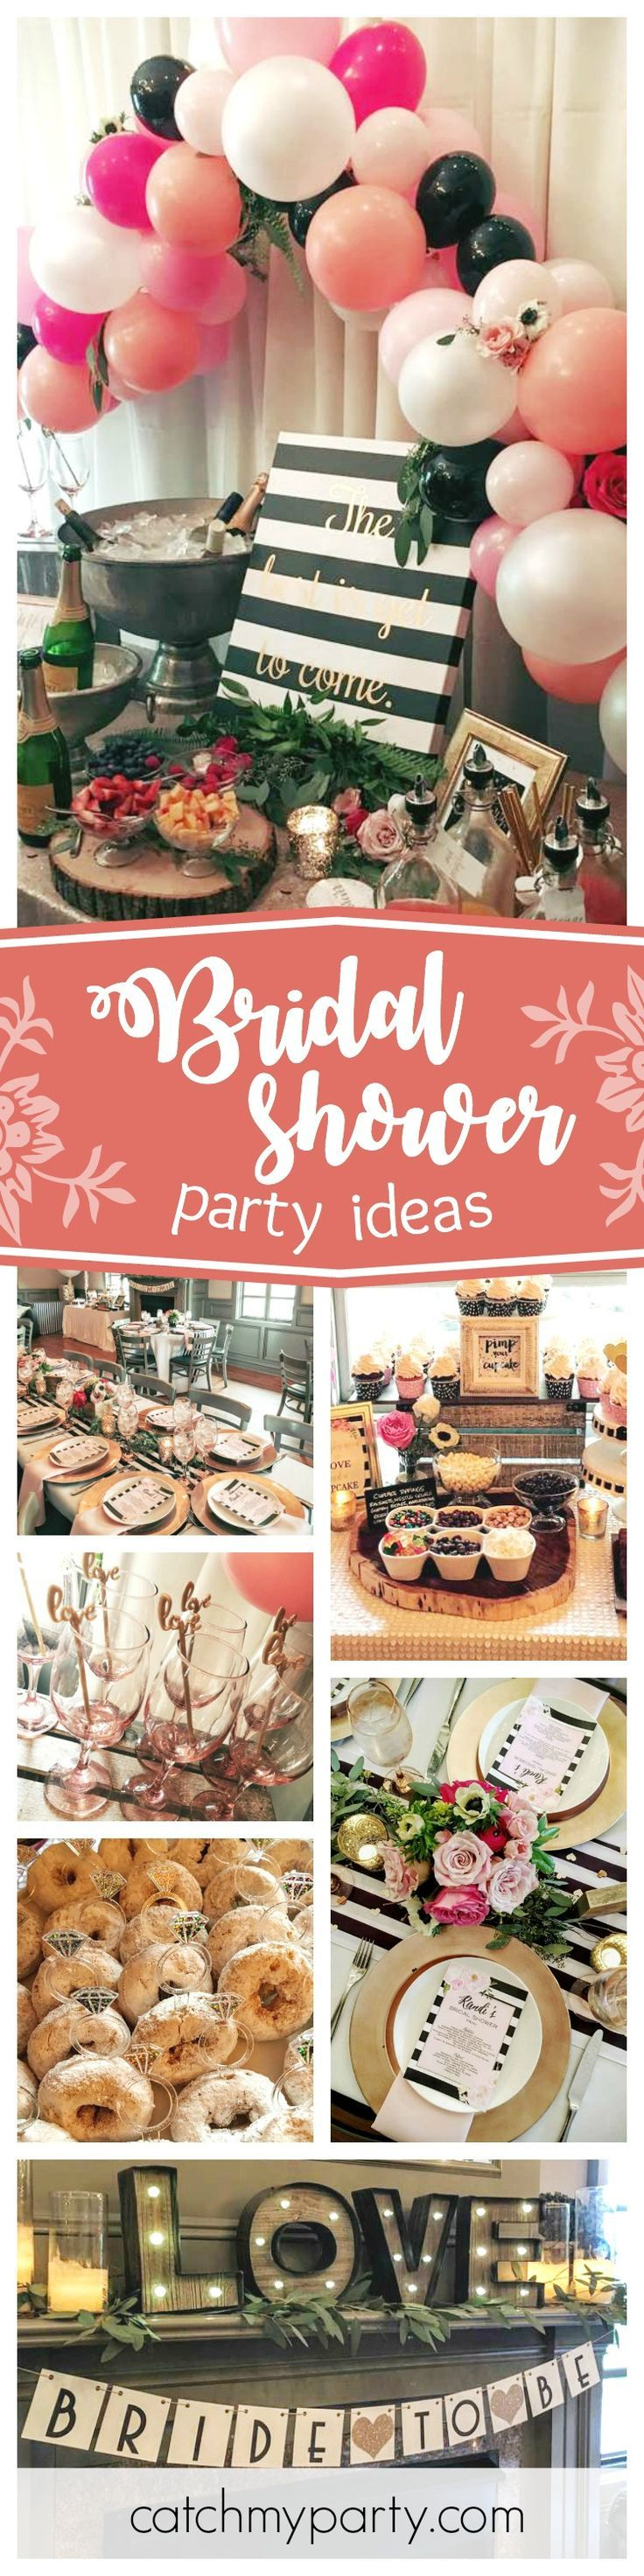 ideas for bridal shower brunch food%0A Bridal Wedding Shower Party Ideas   Shower party  Bridal showers and  Weddings